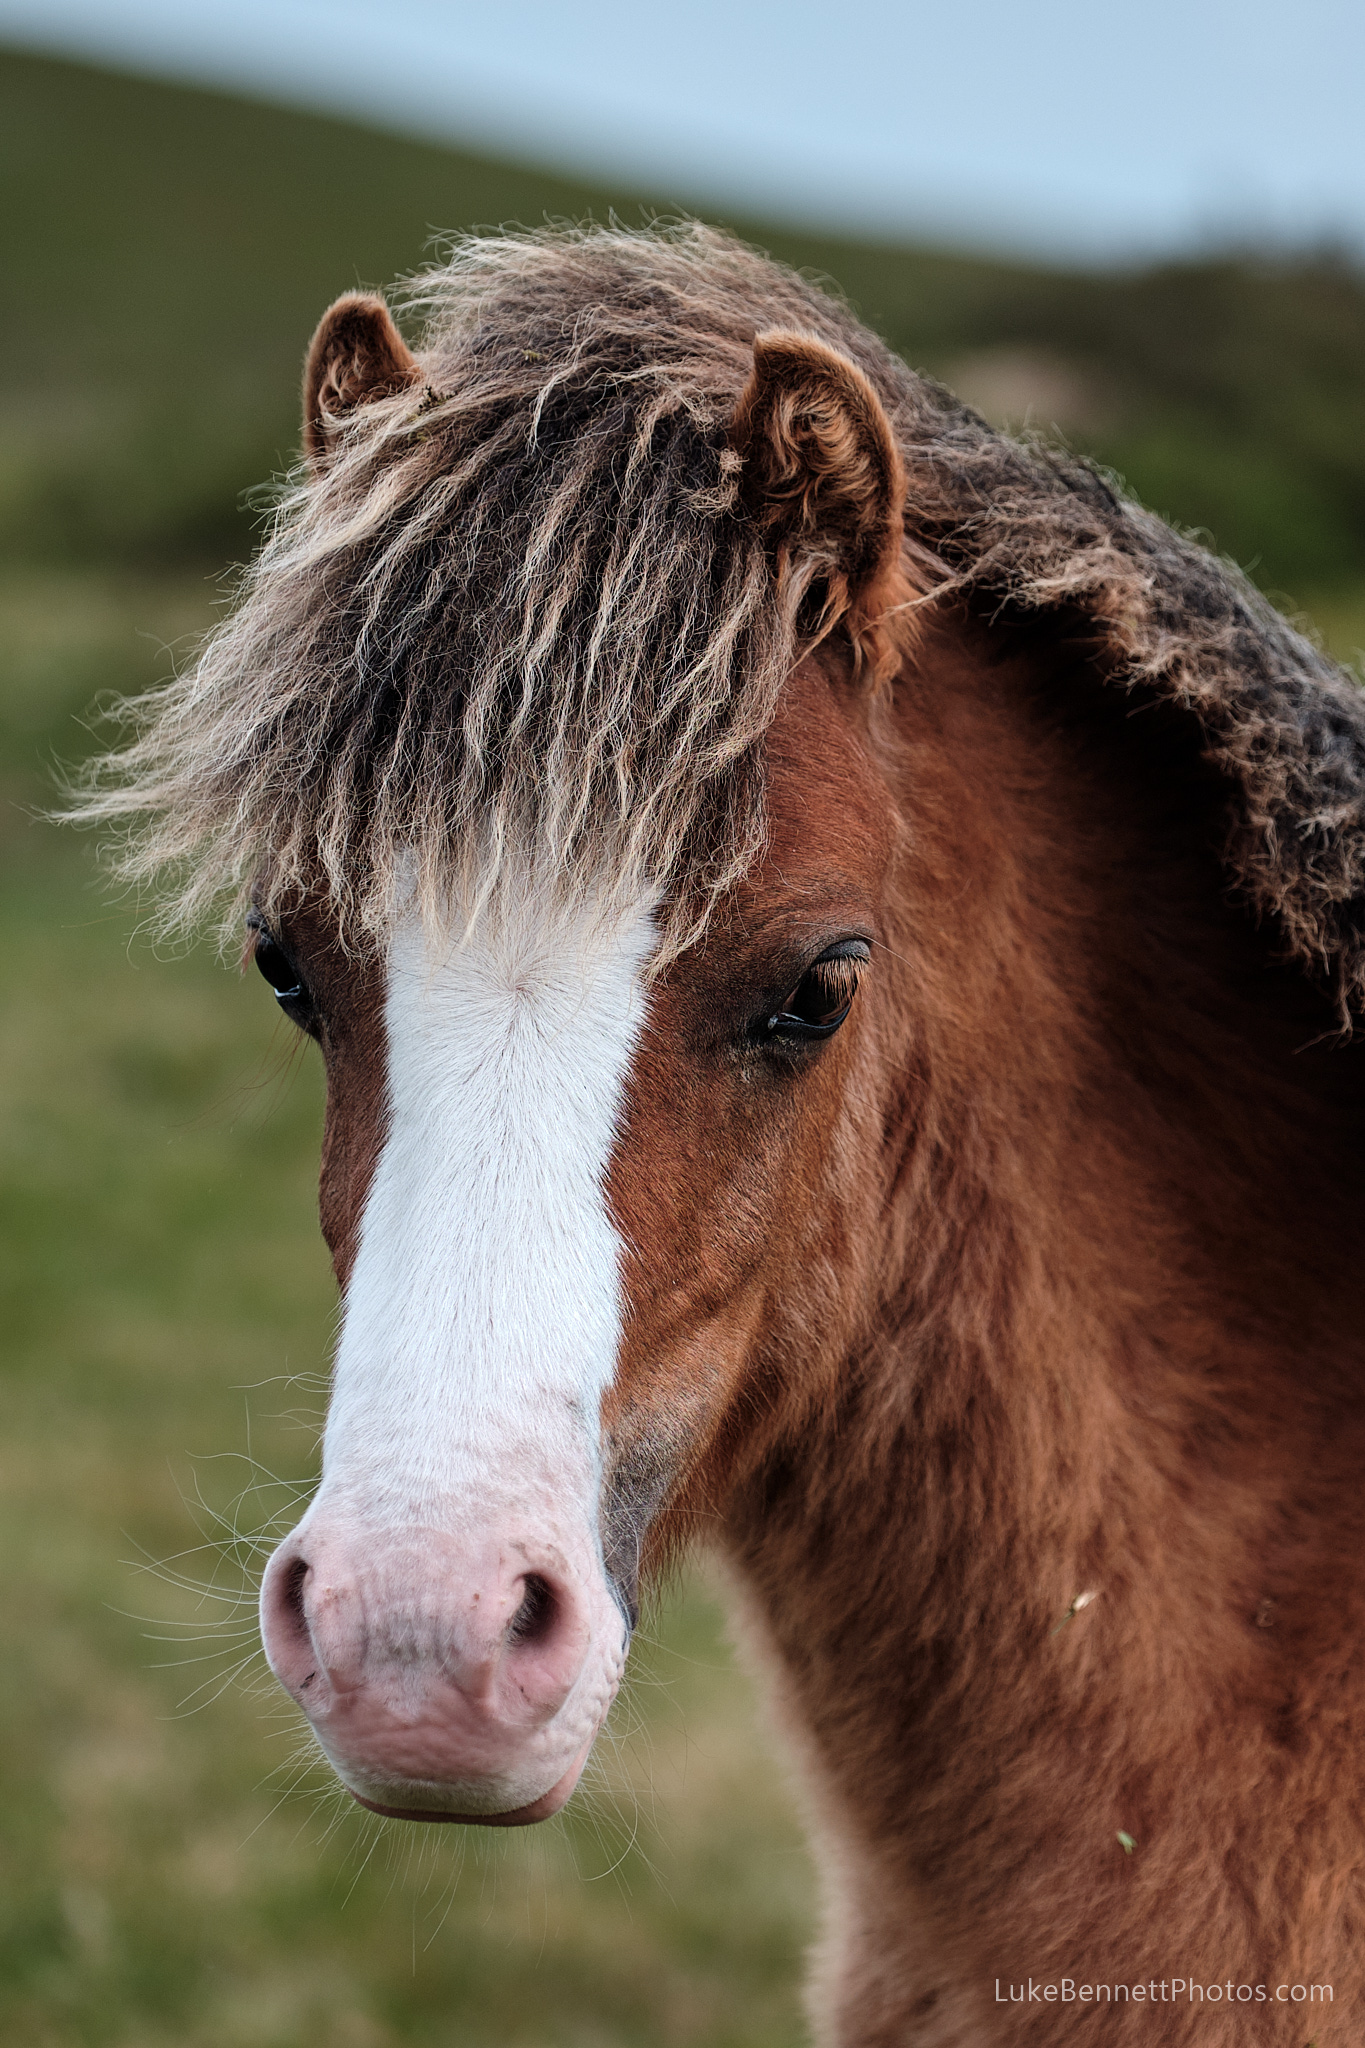 This pony thinks it's Pat Sharp